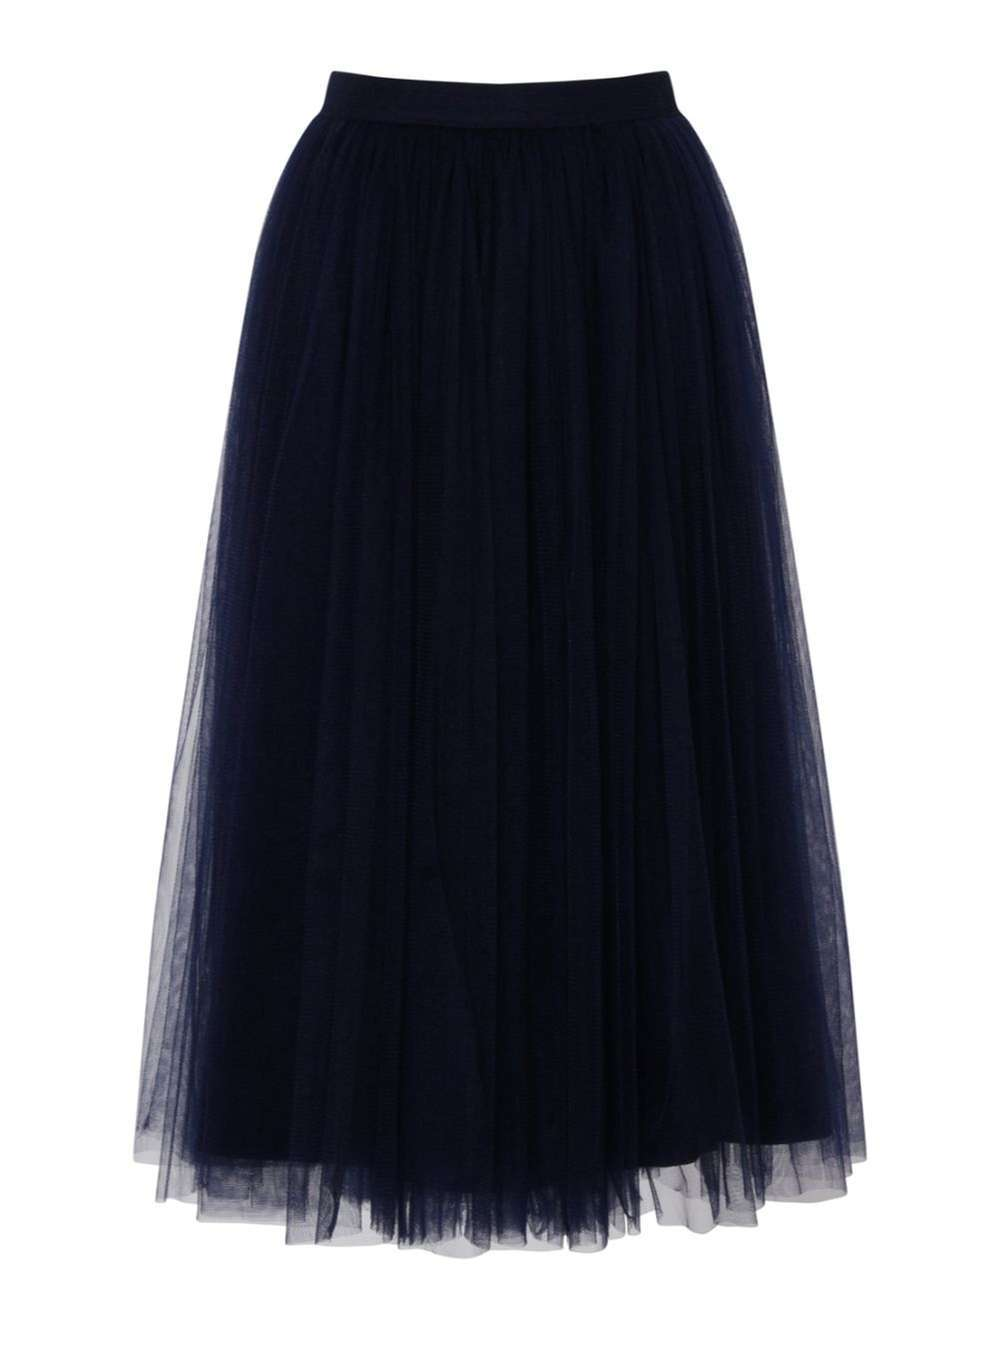 Womens **Little Mistress Navy Tulle Midi Skirt Blue - length: below the knee; pattern: plain; style: full/prom skirt; fit: loose/voluminous; waist: high rise; predominant colour: navy; fibres: polyester/polyamide - stretch; occasions: occasion; texture group: sheer fabrics/chiffon/organza etc.; pattern type: fabric; season: a/w 2016; wardrobe: event